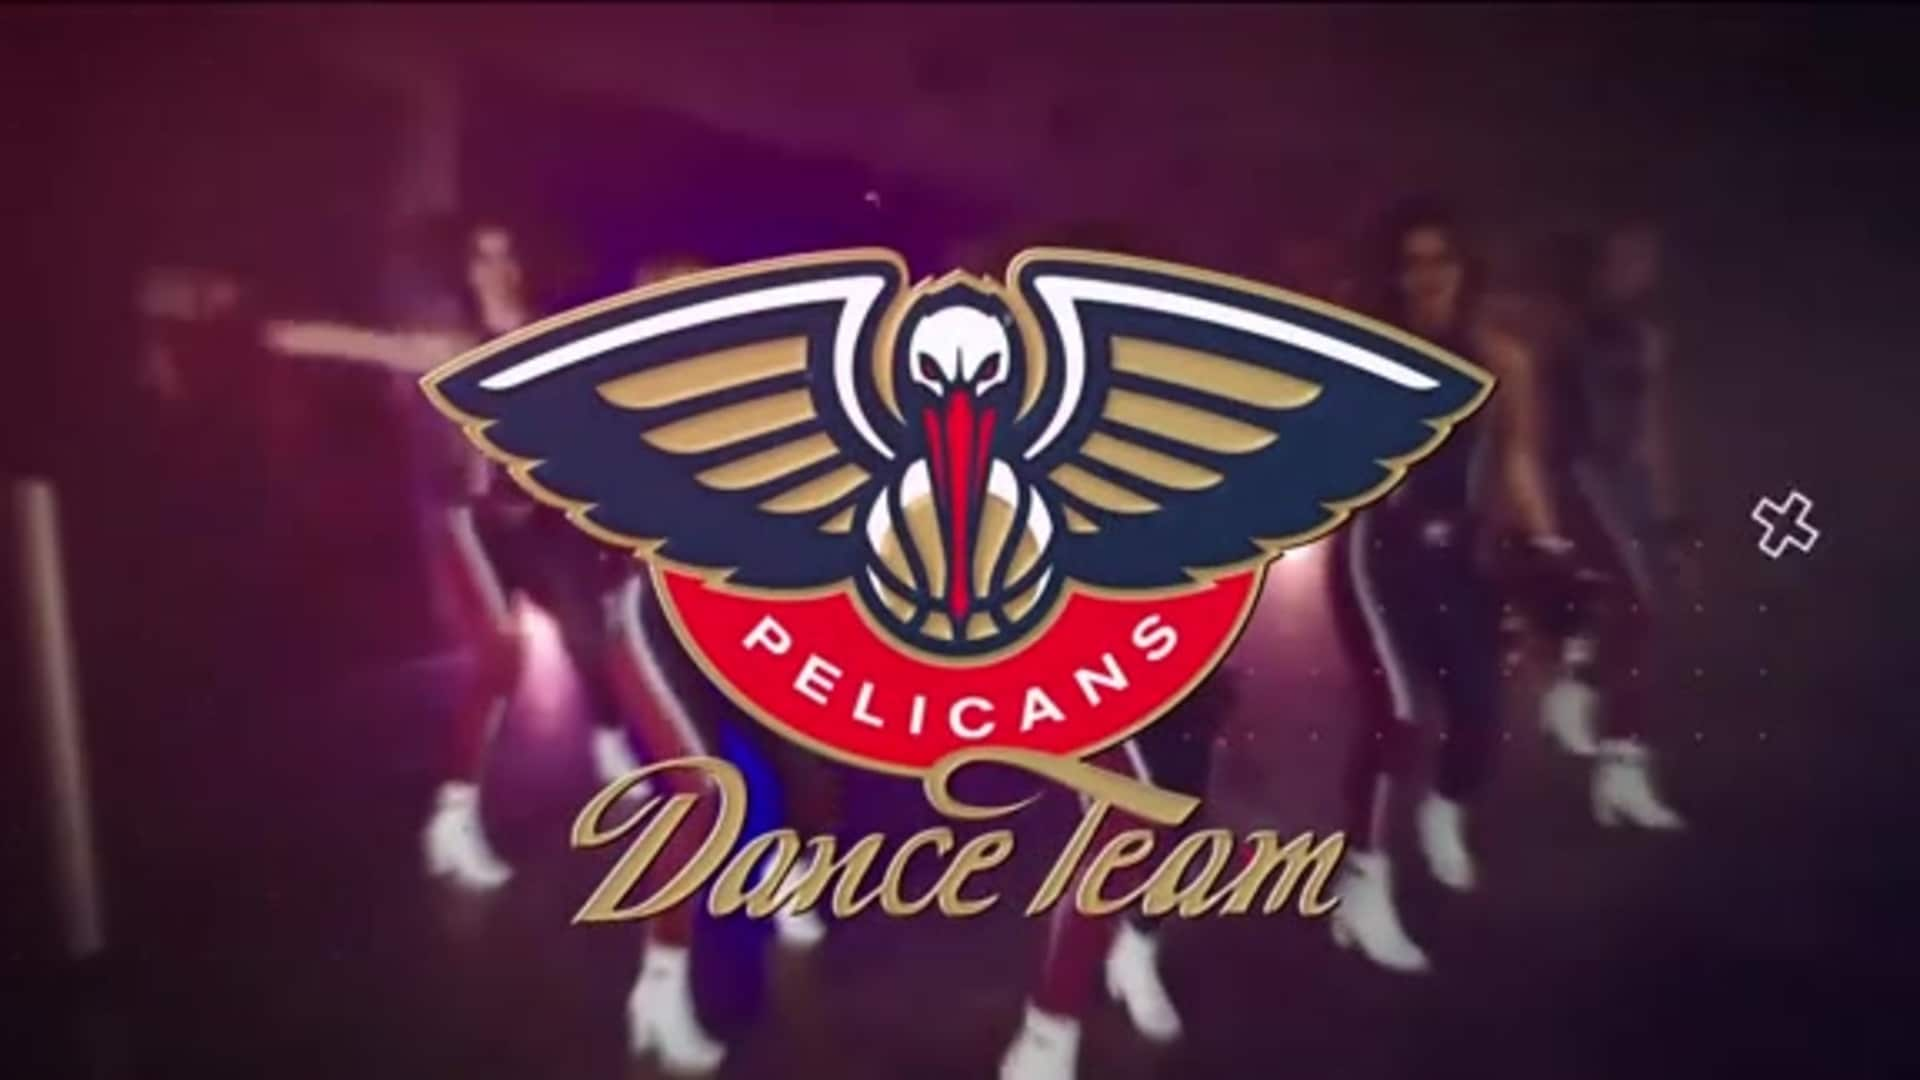 Entertainment: Pelicans Dance Team 3rd quarter performance - November 8 vs. Toronto Raptors